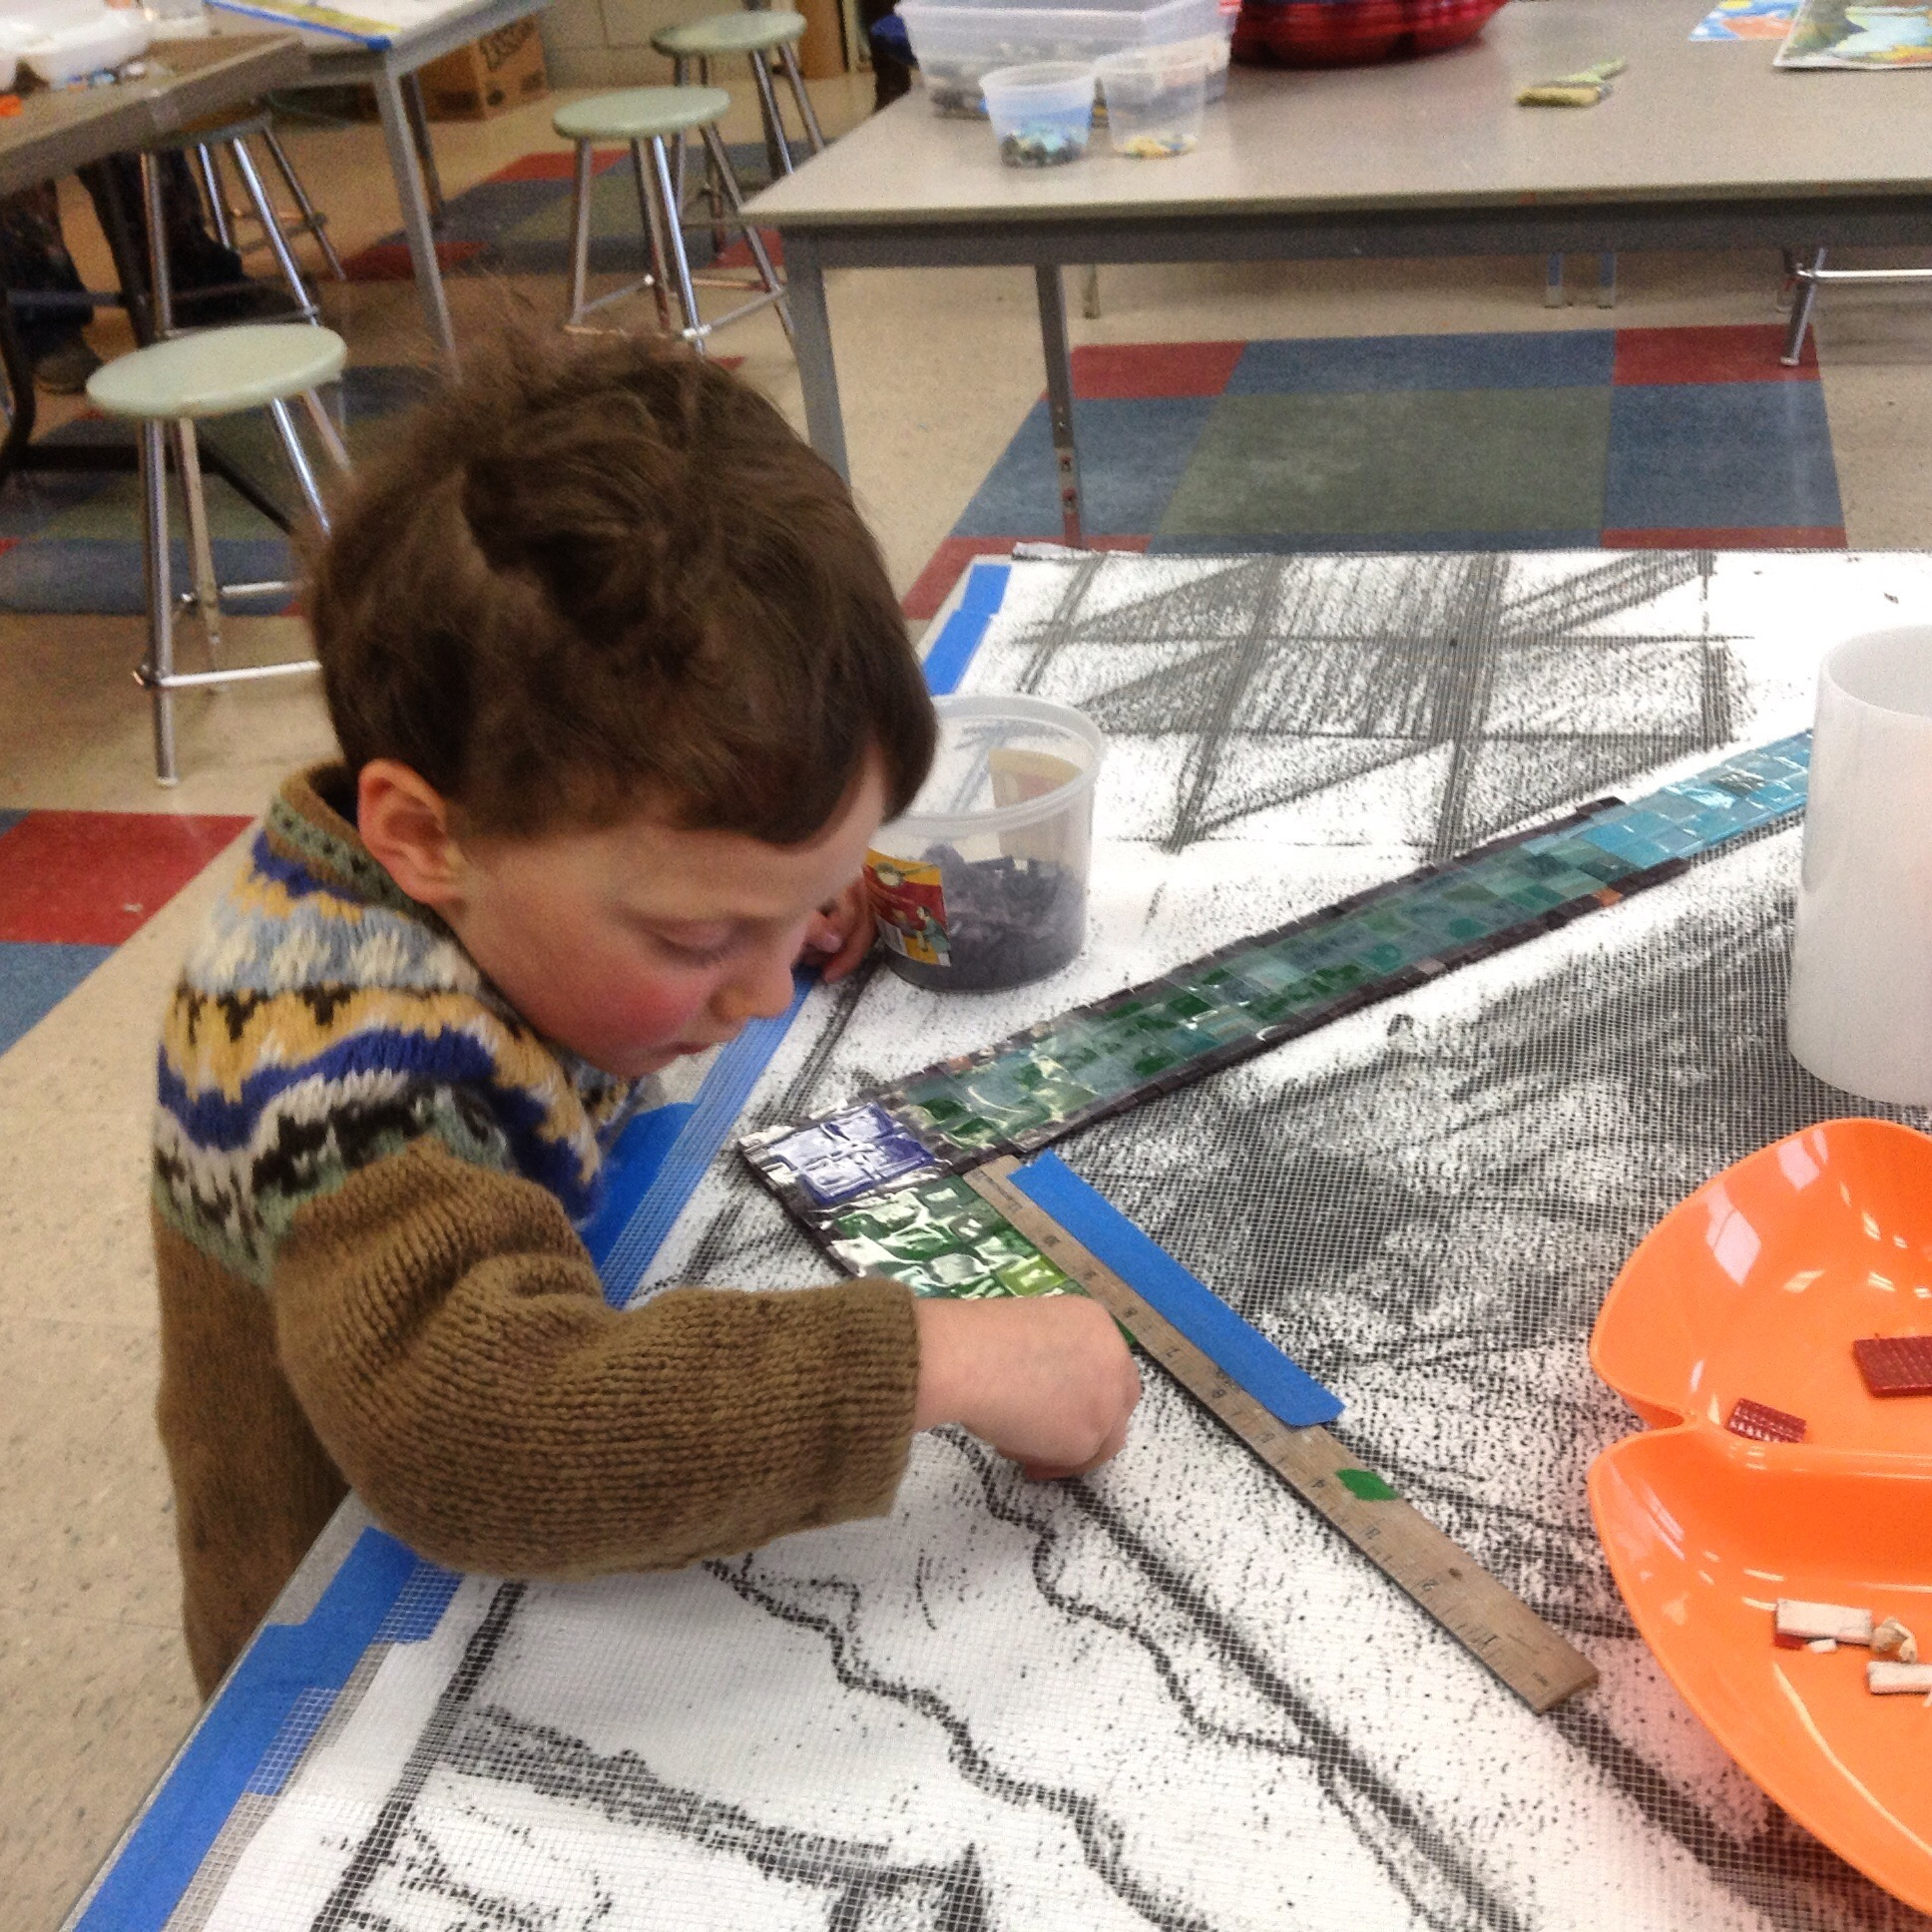 At three years old, one of our youngest mosaic artists...